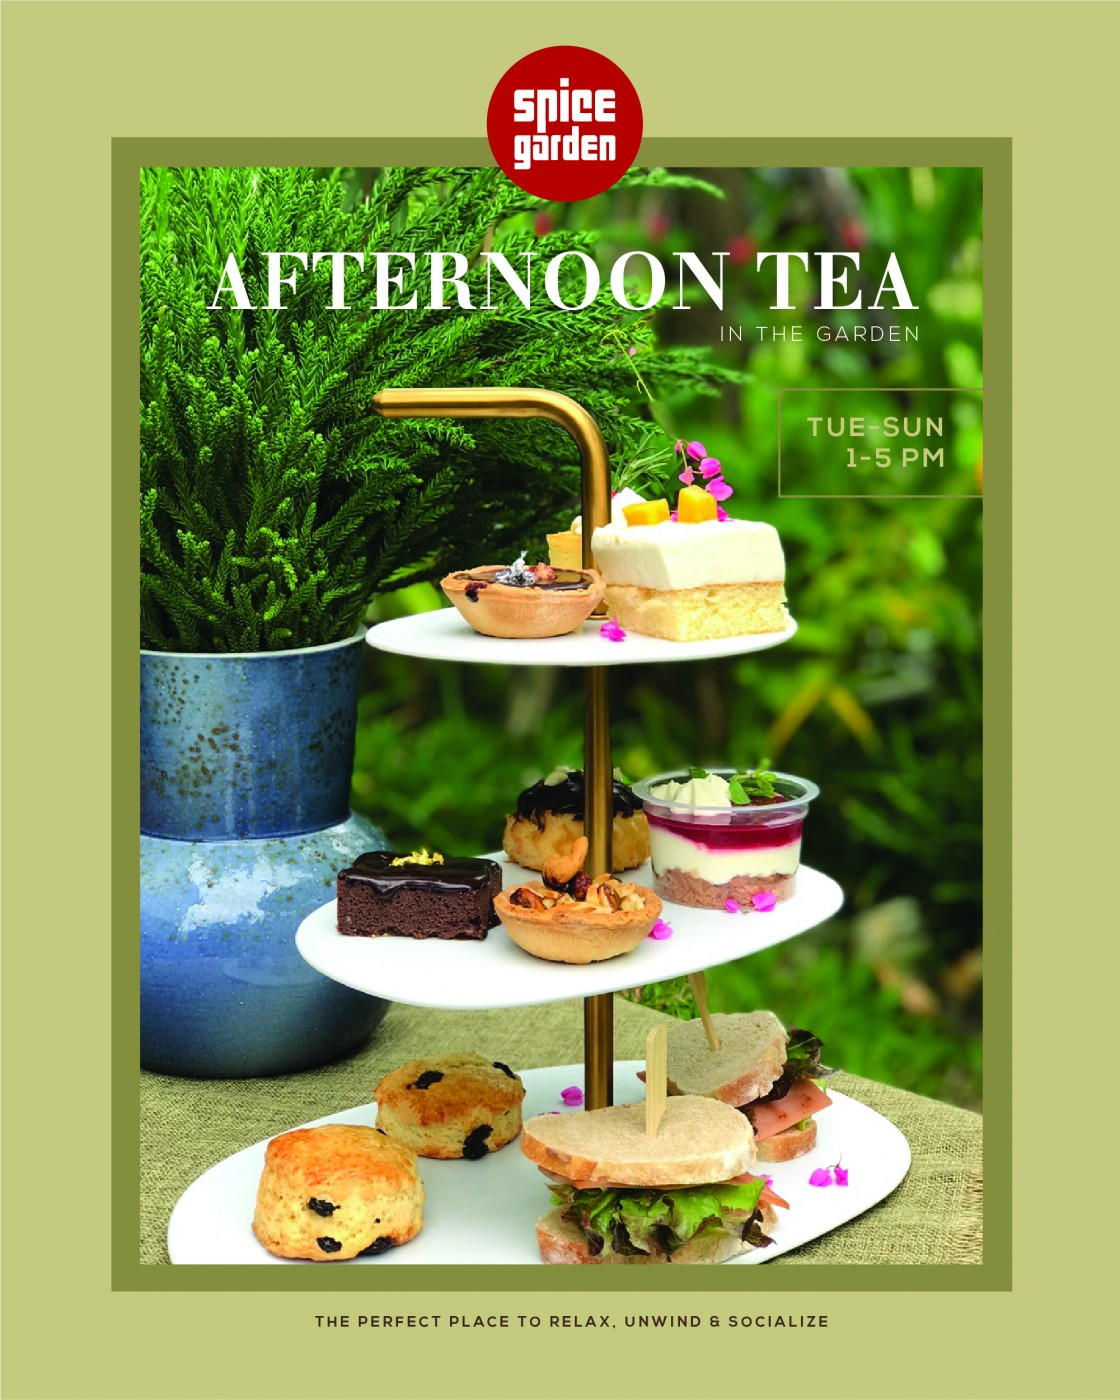 Afternoon Tea within the garden setting